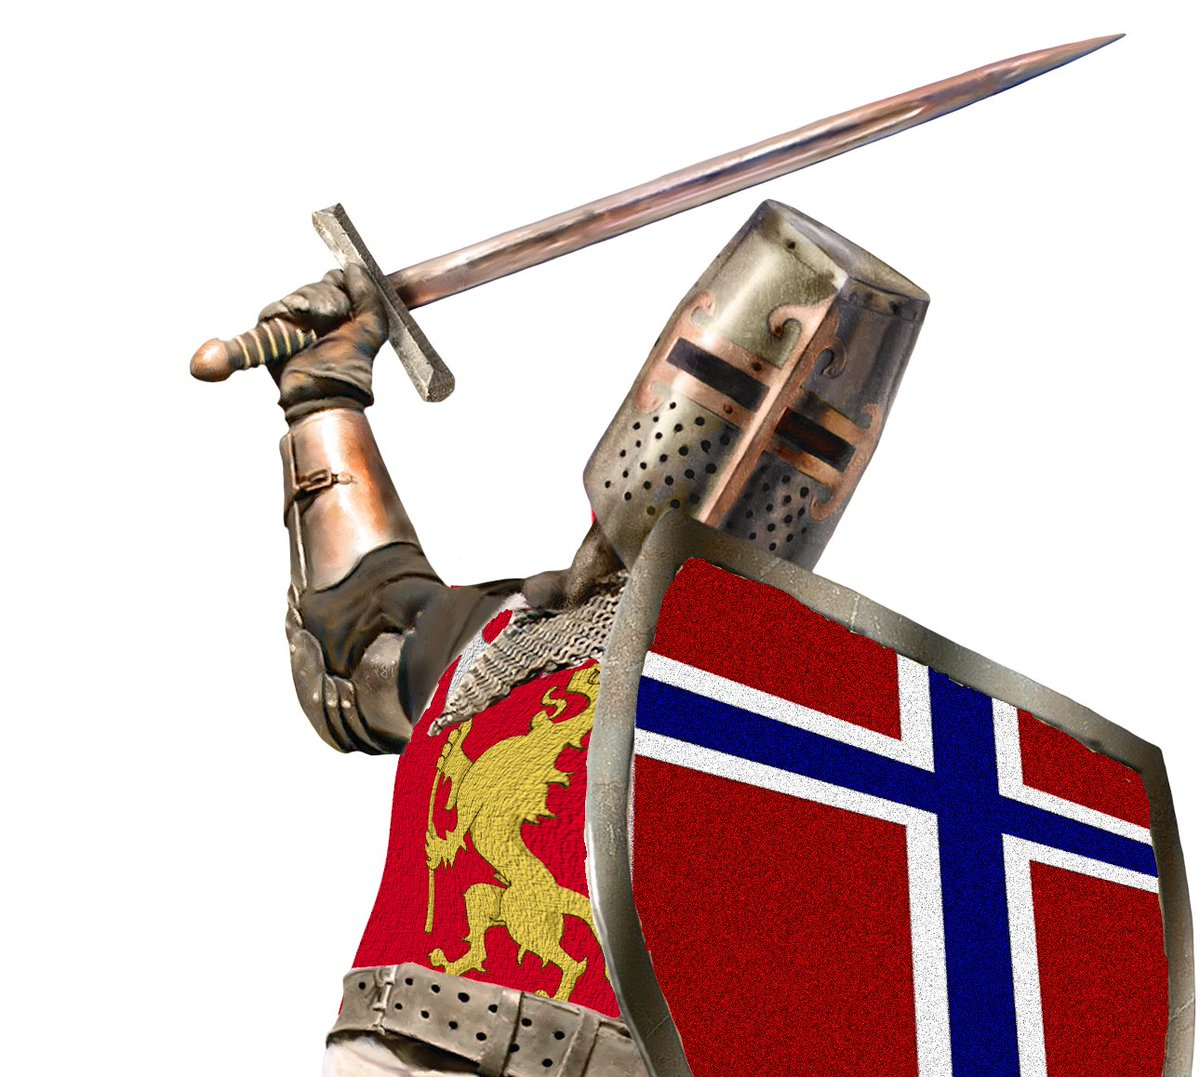 Going live with Mount and Blade 2: Bannerlord! #Bannerlord #Twitch #Streaming  https://www.twitch.tv/norwegiancrusader …pic.twitter.com/6xcOrBIebD